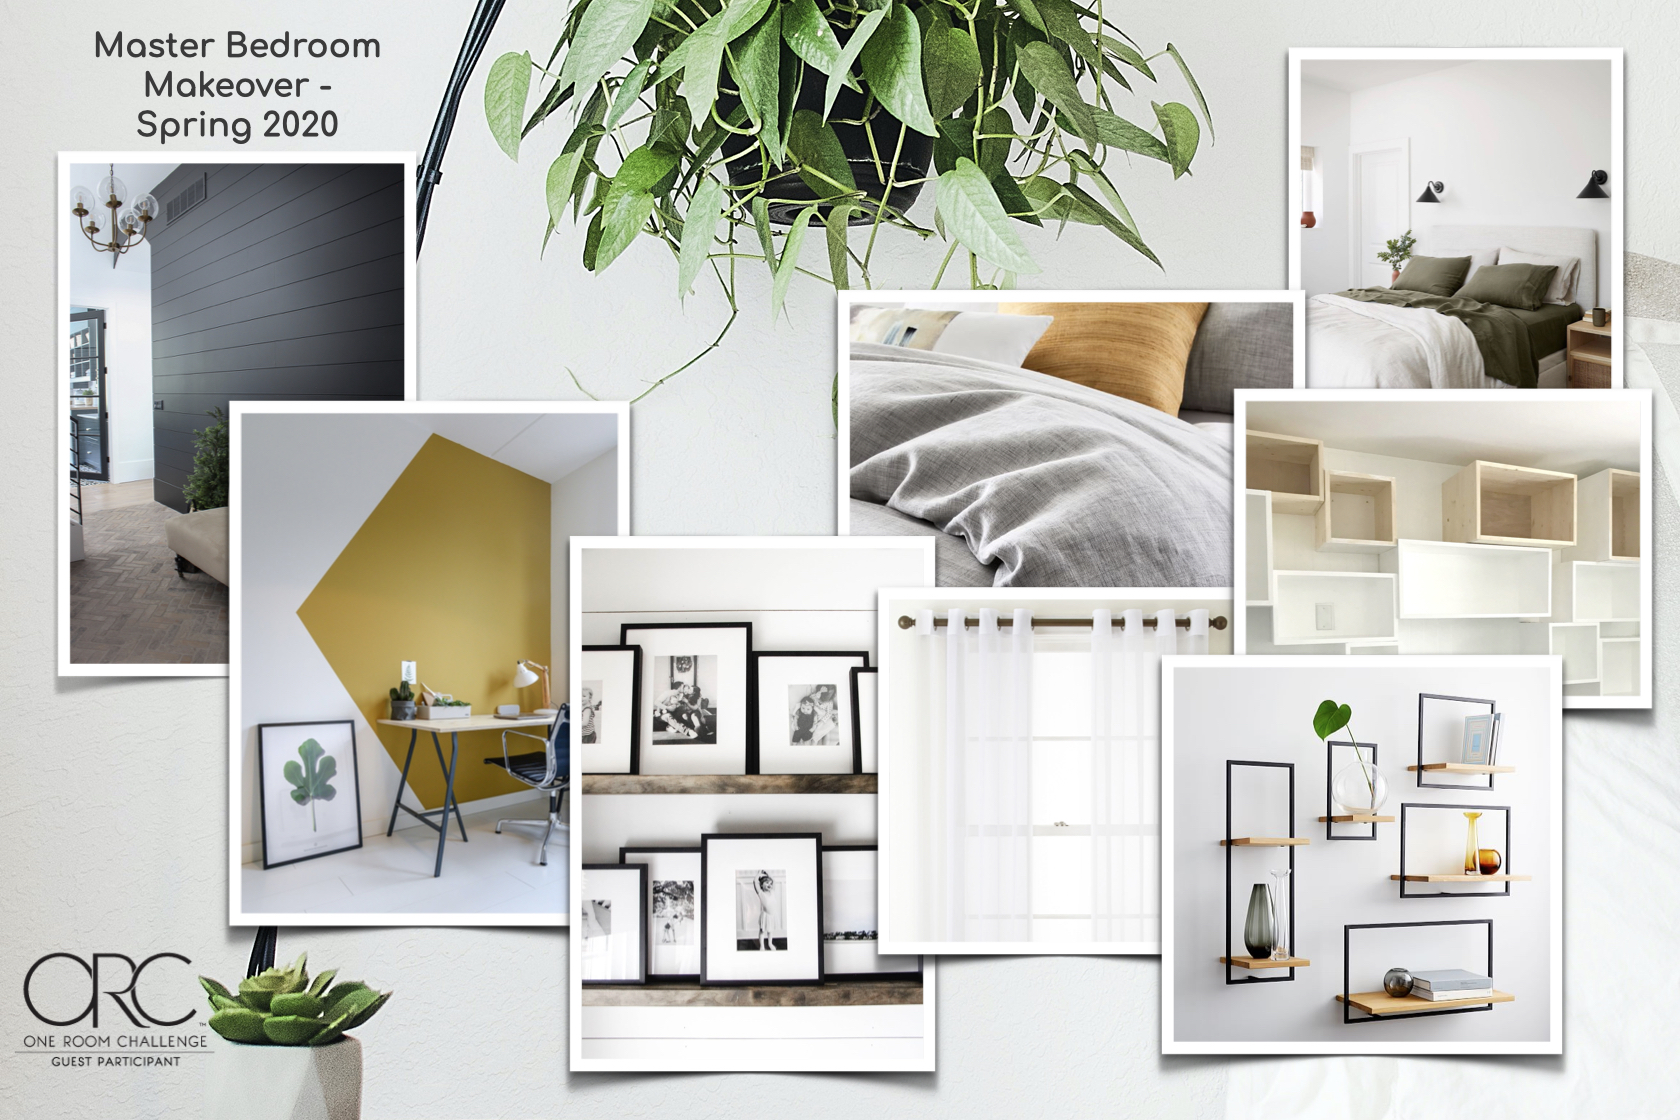 Master bedroom makeover mood board.